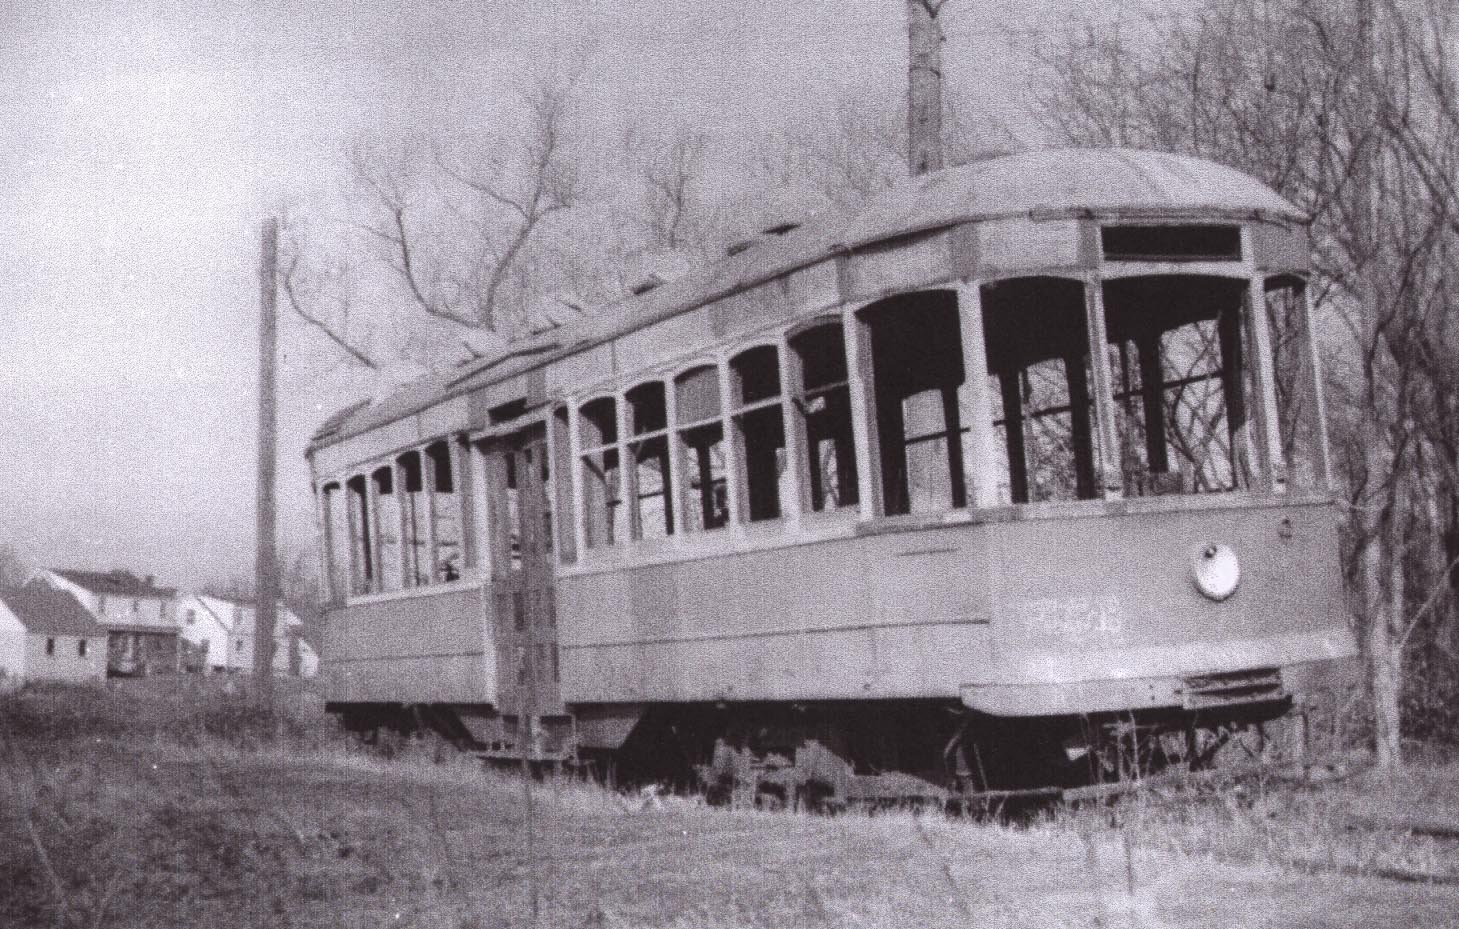 650 at Shore Line Trolley